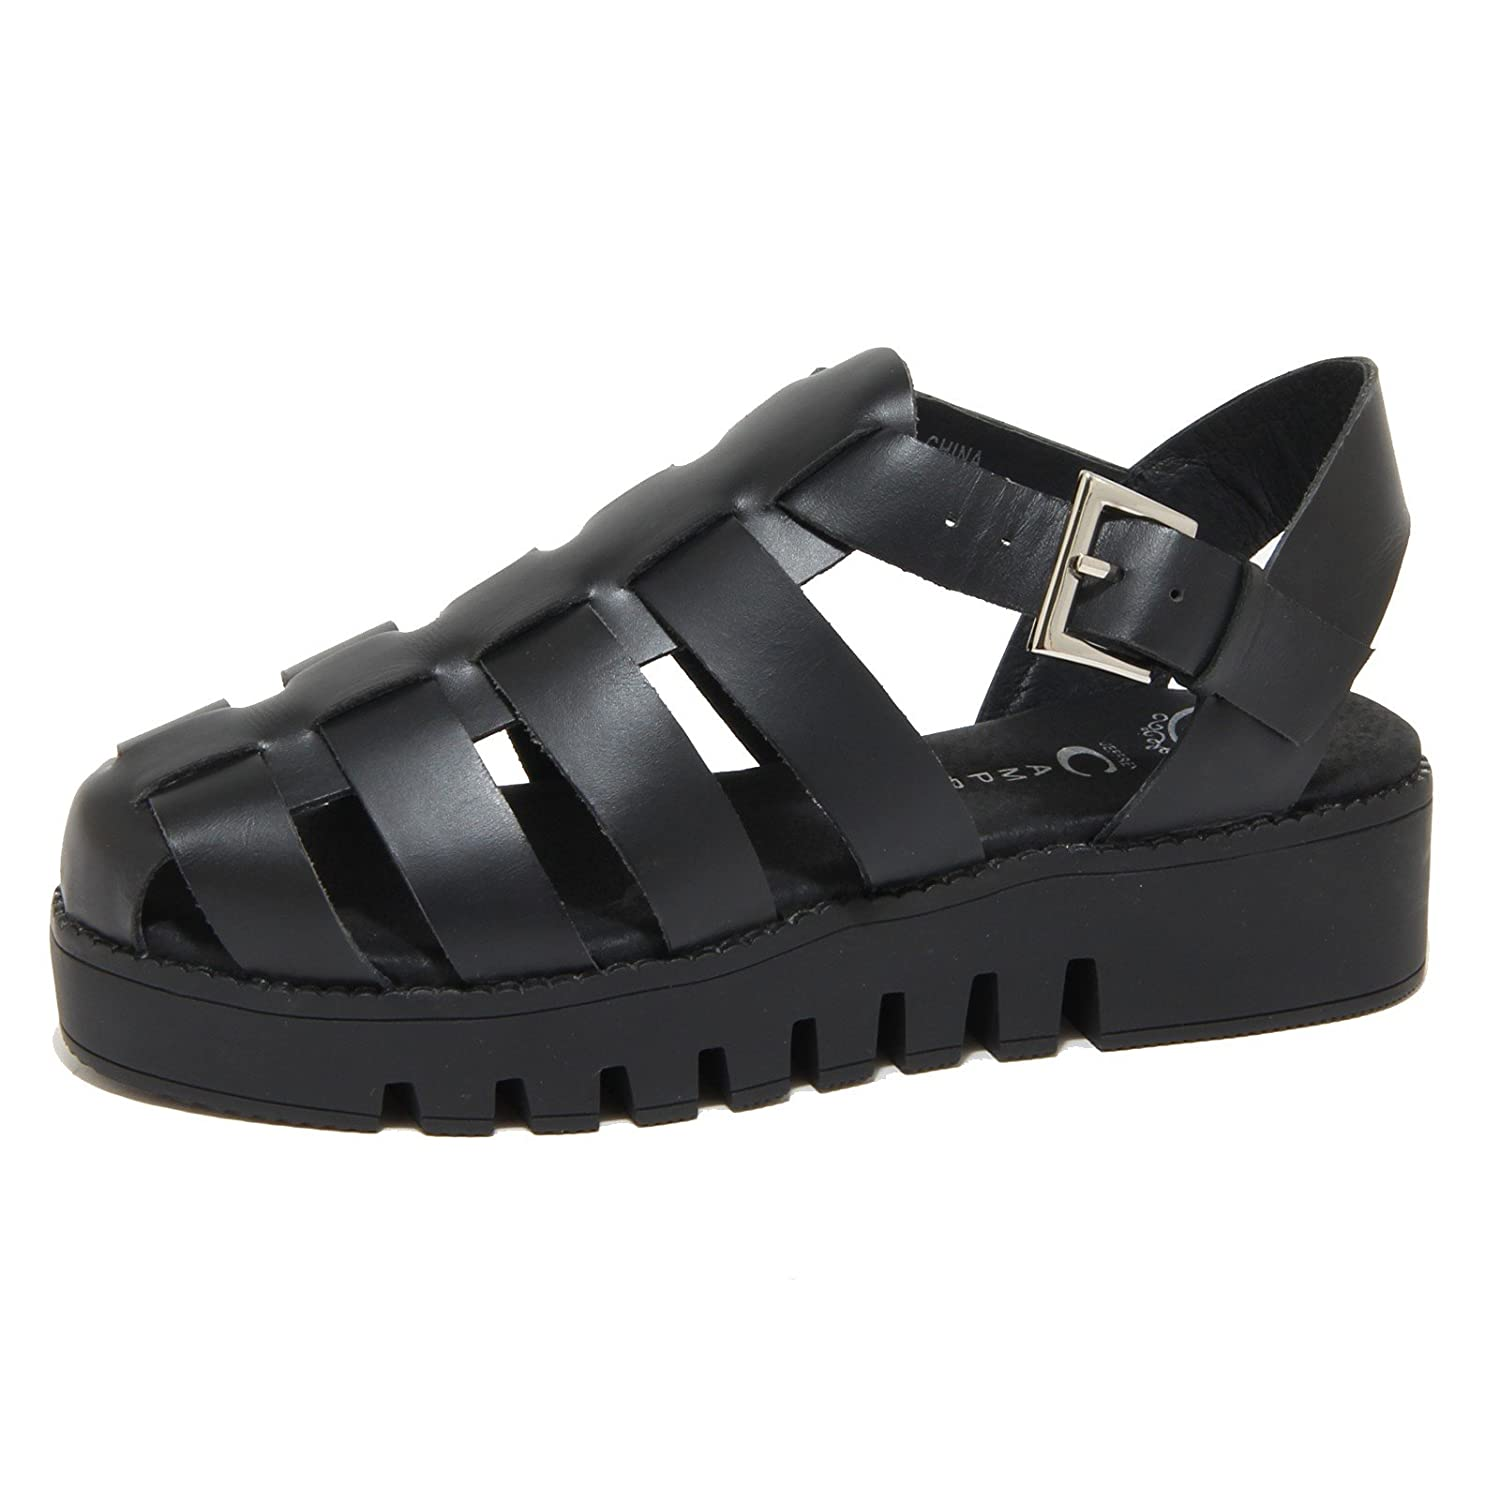 8811N Nero sandalo donna JEFFREY CAMPBELL nero shoes sandals woman Nero 8811N d9c4ac